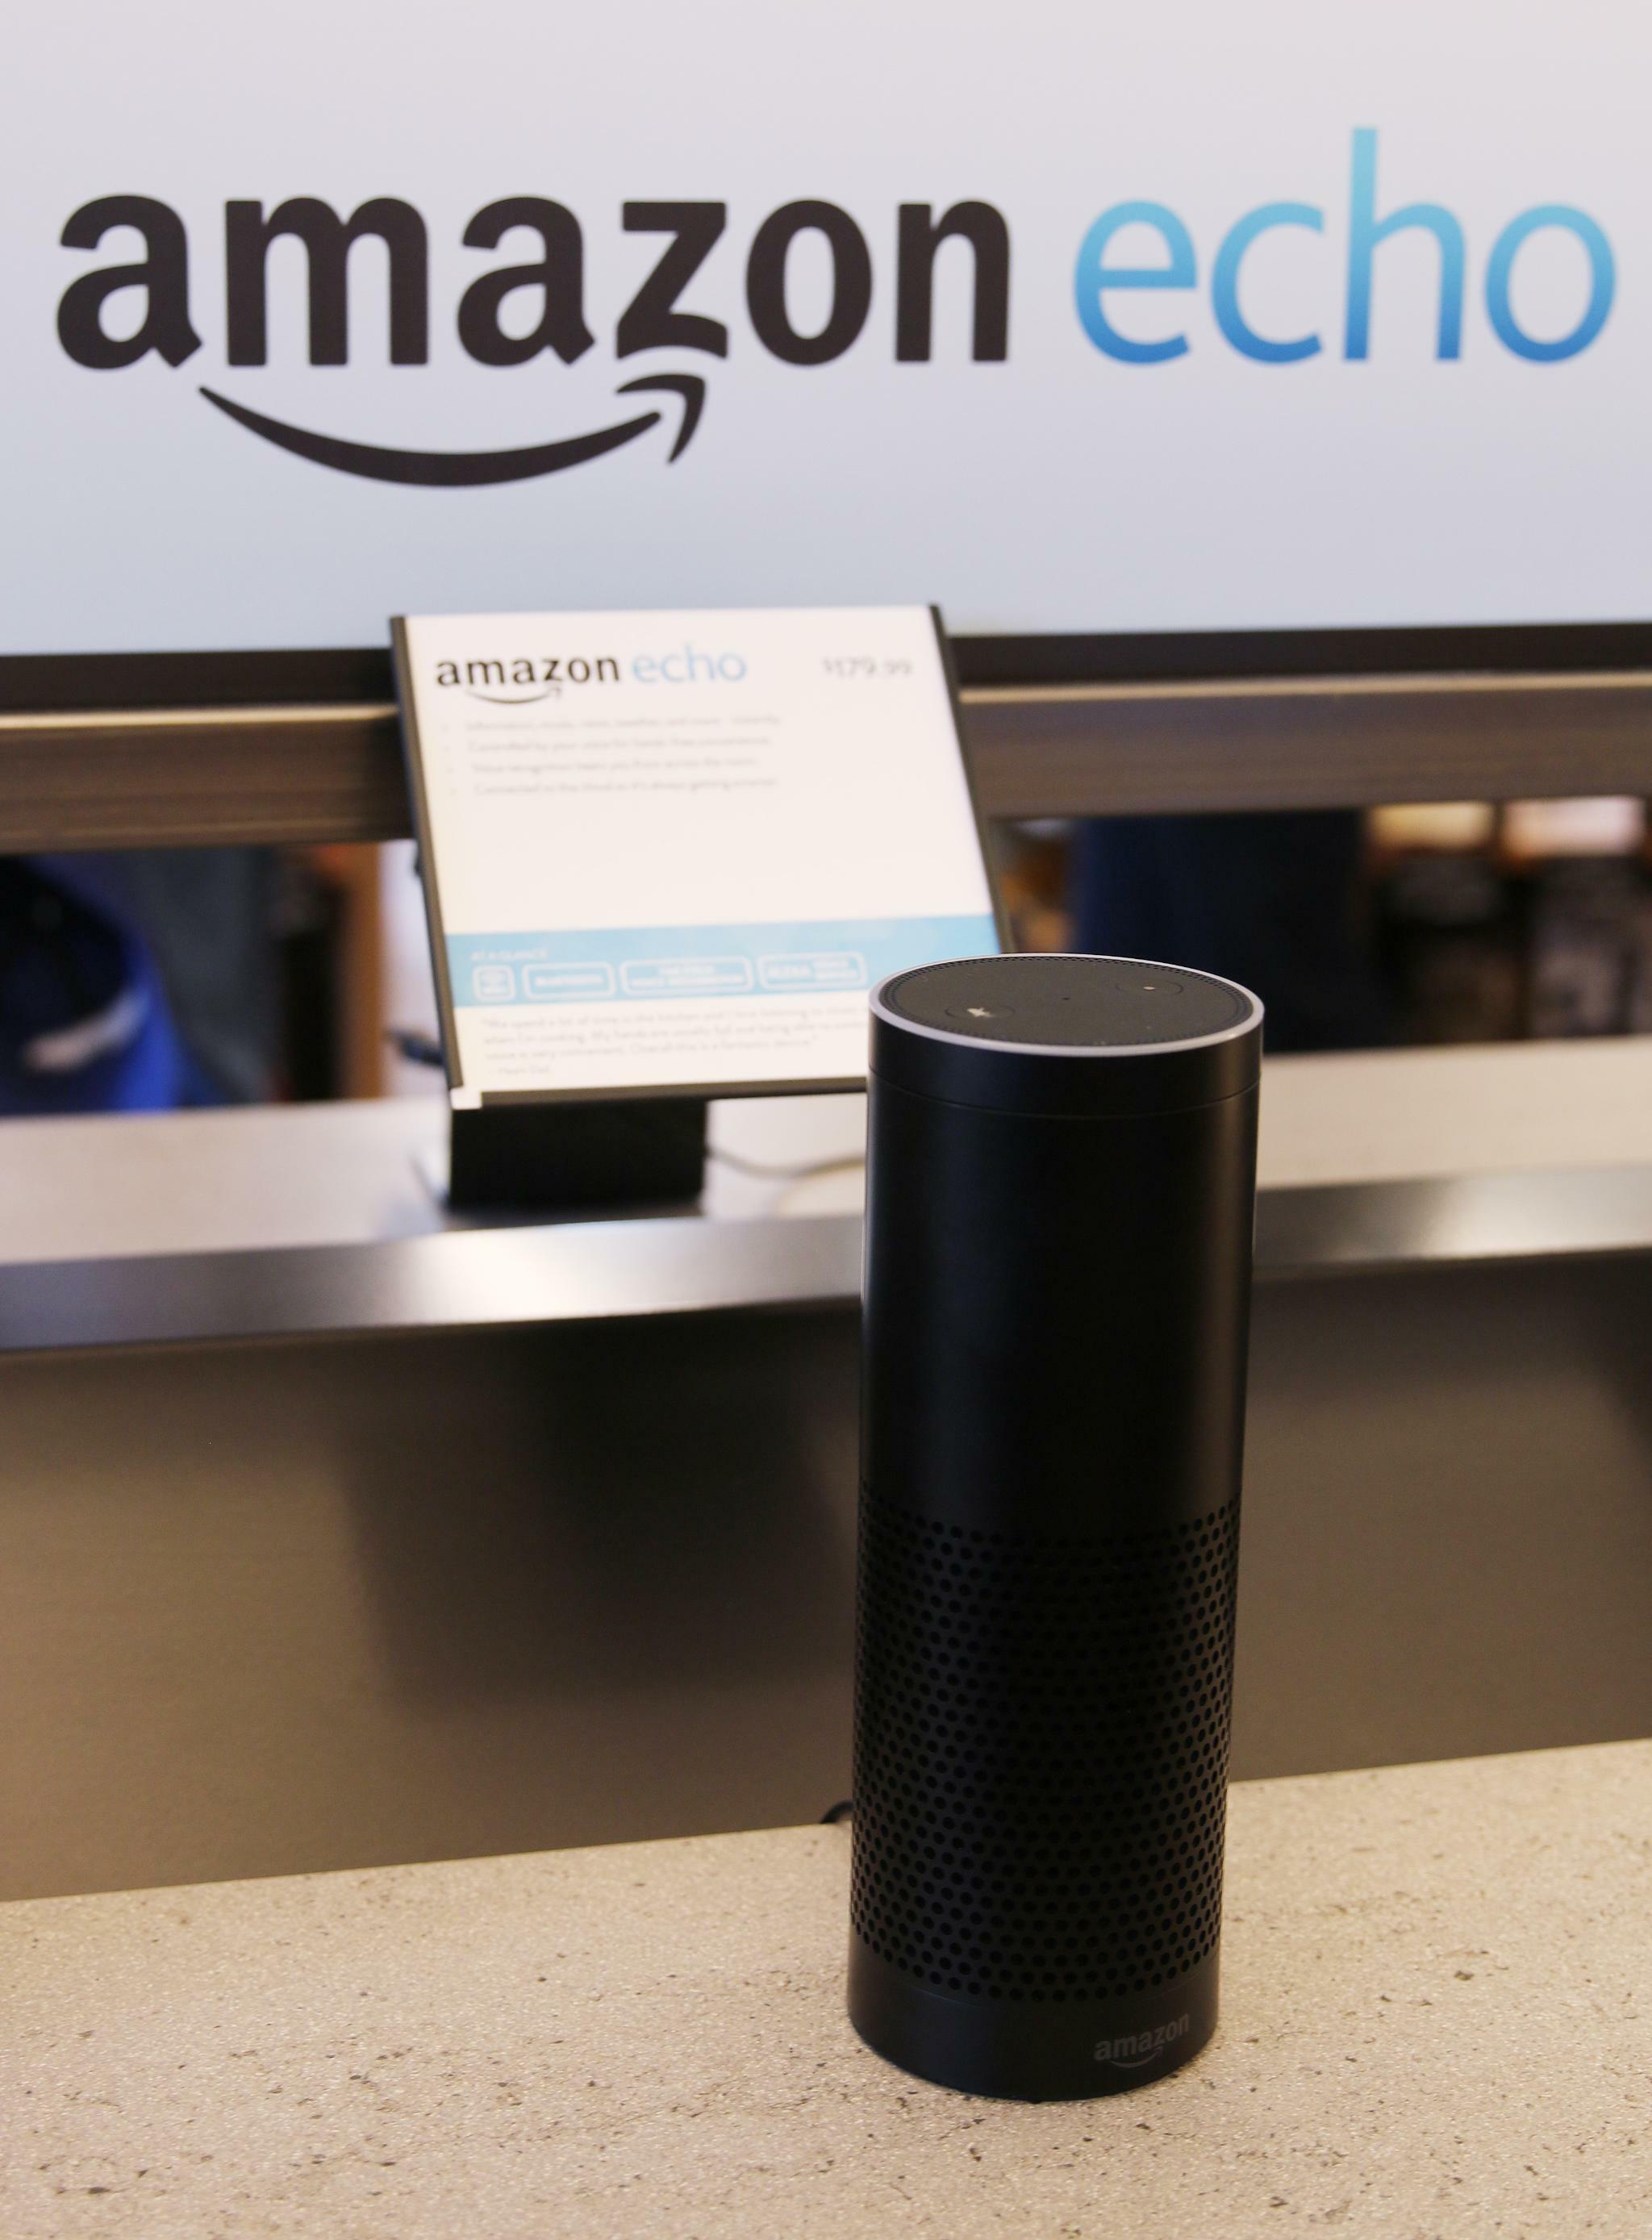 Spiegel Online Amazon Echo Amazon Startet Musik Streaming Dienst Quotecho Quot Quotalexa Wie